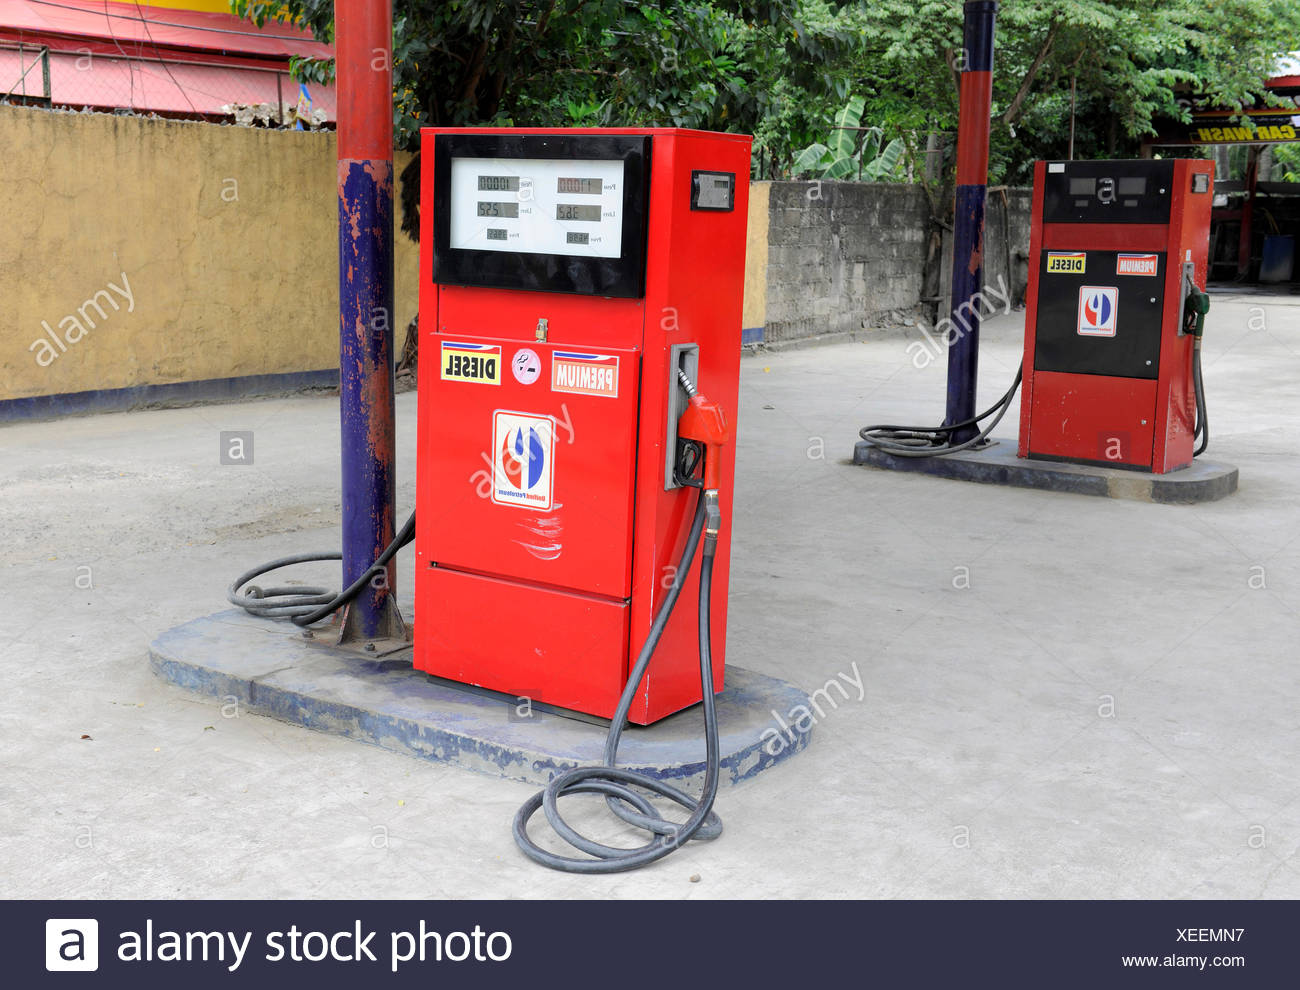 Red fuel pumps, Cebu, Philippines, Southeast Asia, Asia - Stock Image